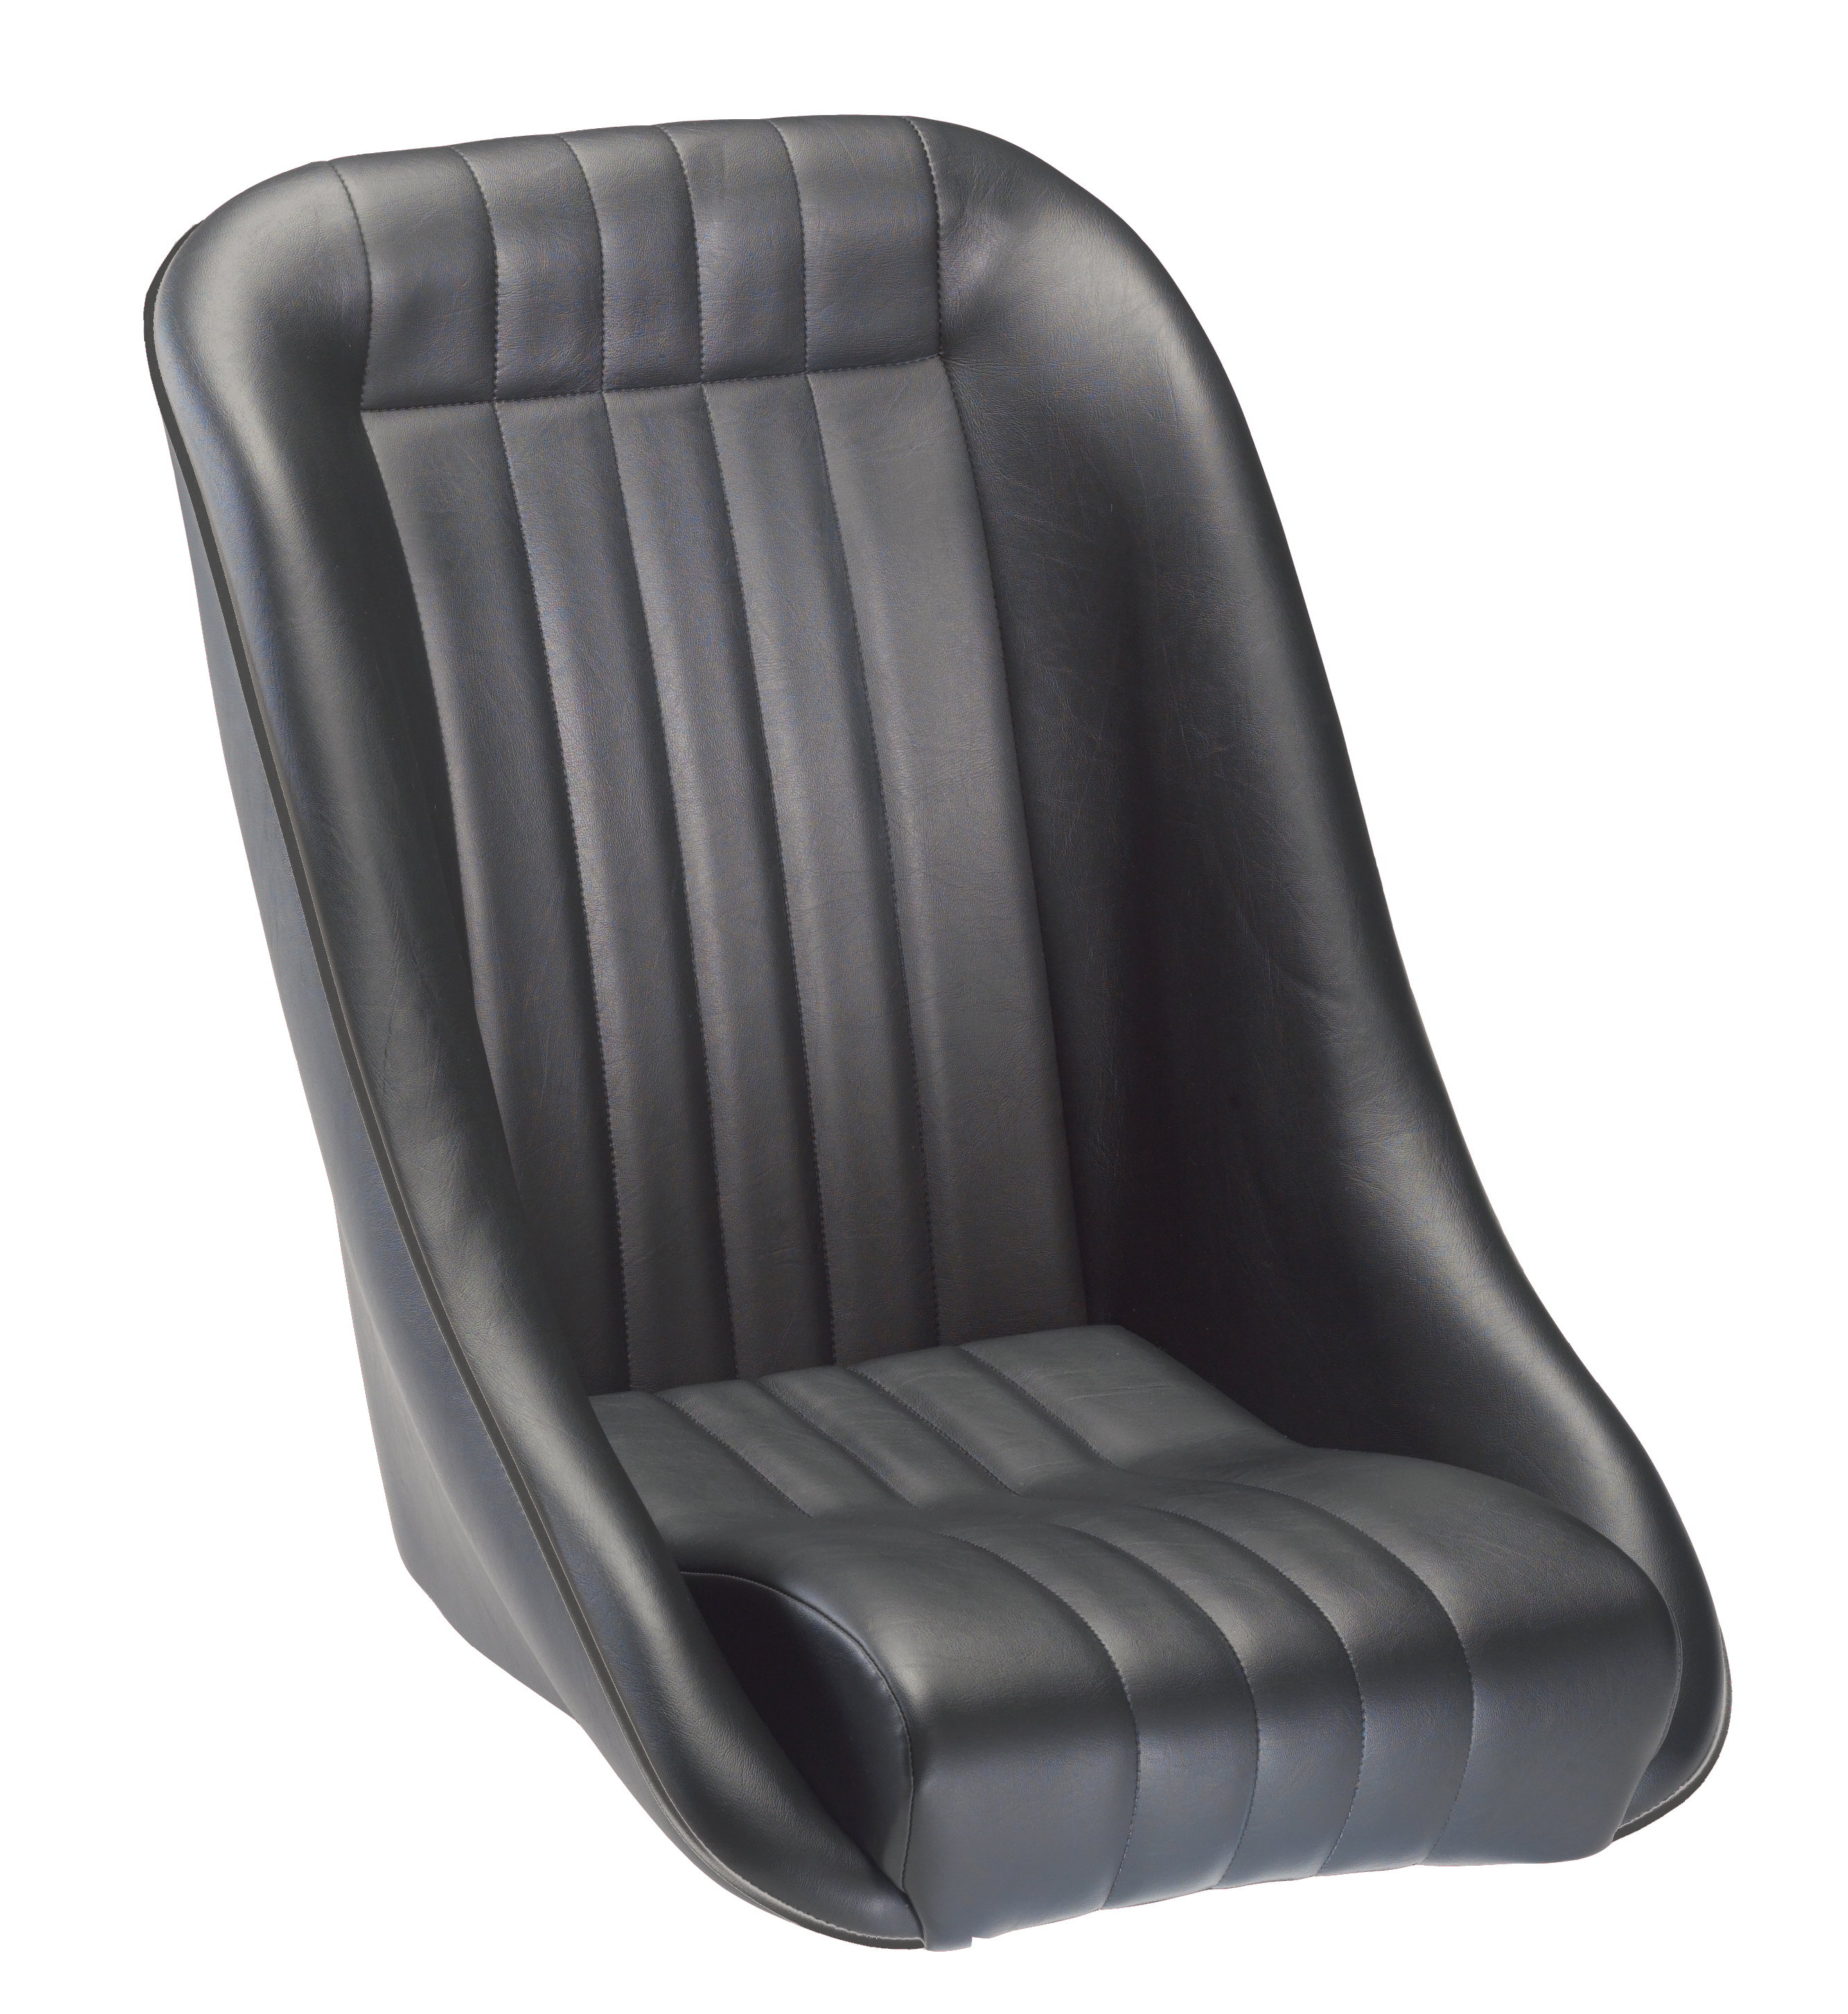 Racing Car Seats For Sale In South Africa